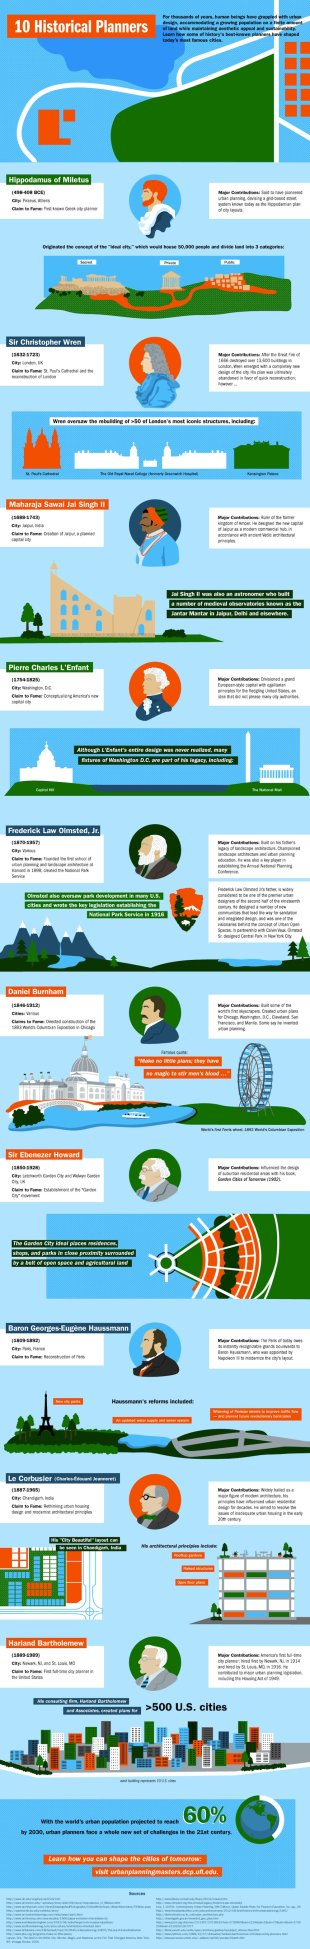 10 Historical Planners: Their Influence On Today's Cities [Infographic] image UF historical planners